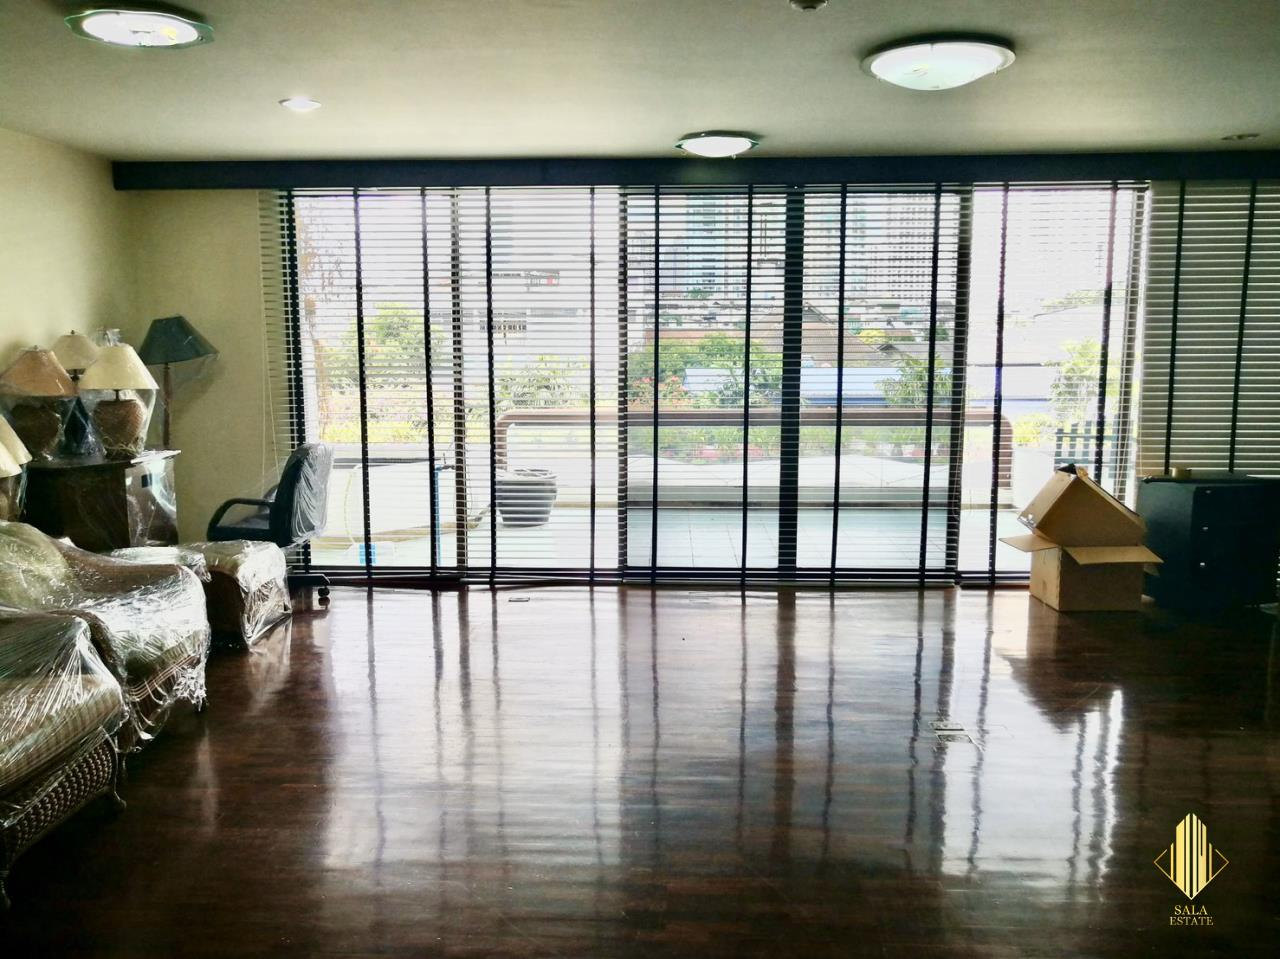 SALA ESTATE Agency's (FOR RENT) TRIDHOS CITY MARINA – RIVERSIDE - NEAR ICON SIAM-PET ALLOWED, 3 BEDROOMS 4 BATHROOMS, 4 FLOORS, 300 SQM, FULLY FURNISHED, CITY VIEW 5